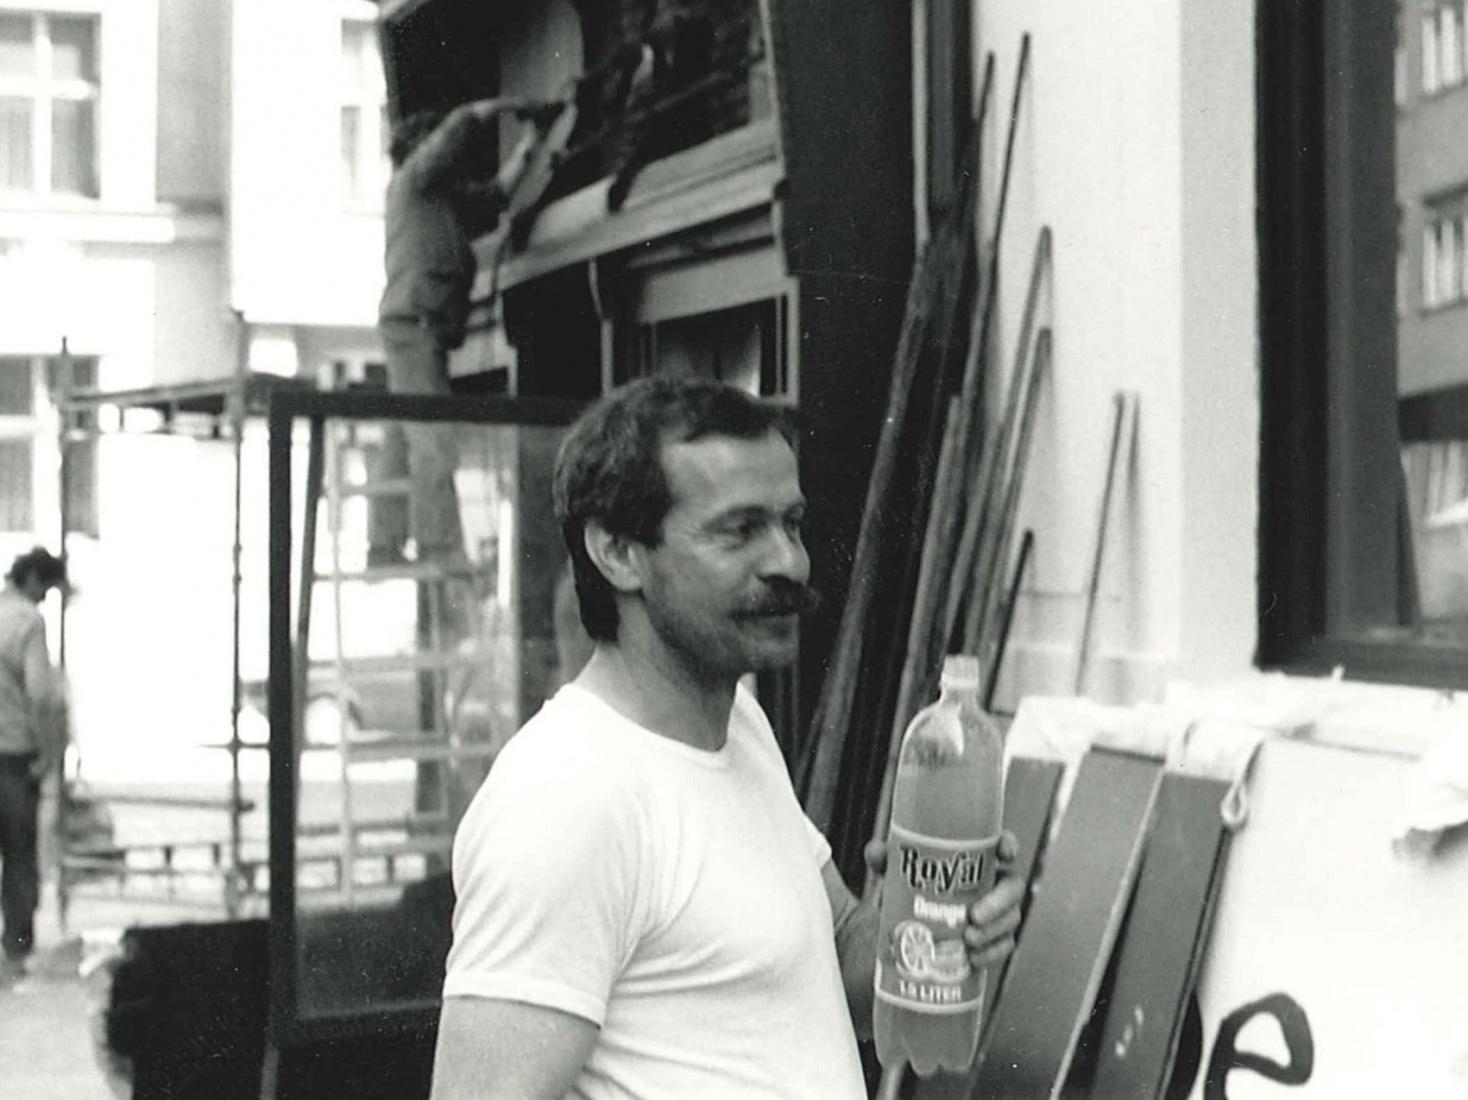 Head of the reconstruction team Honza Král, during renovations before the opening of The Globe Bookstore and Coffeehouse in Holešovice, Prague. 1993.